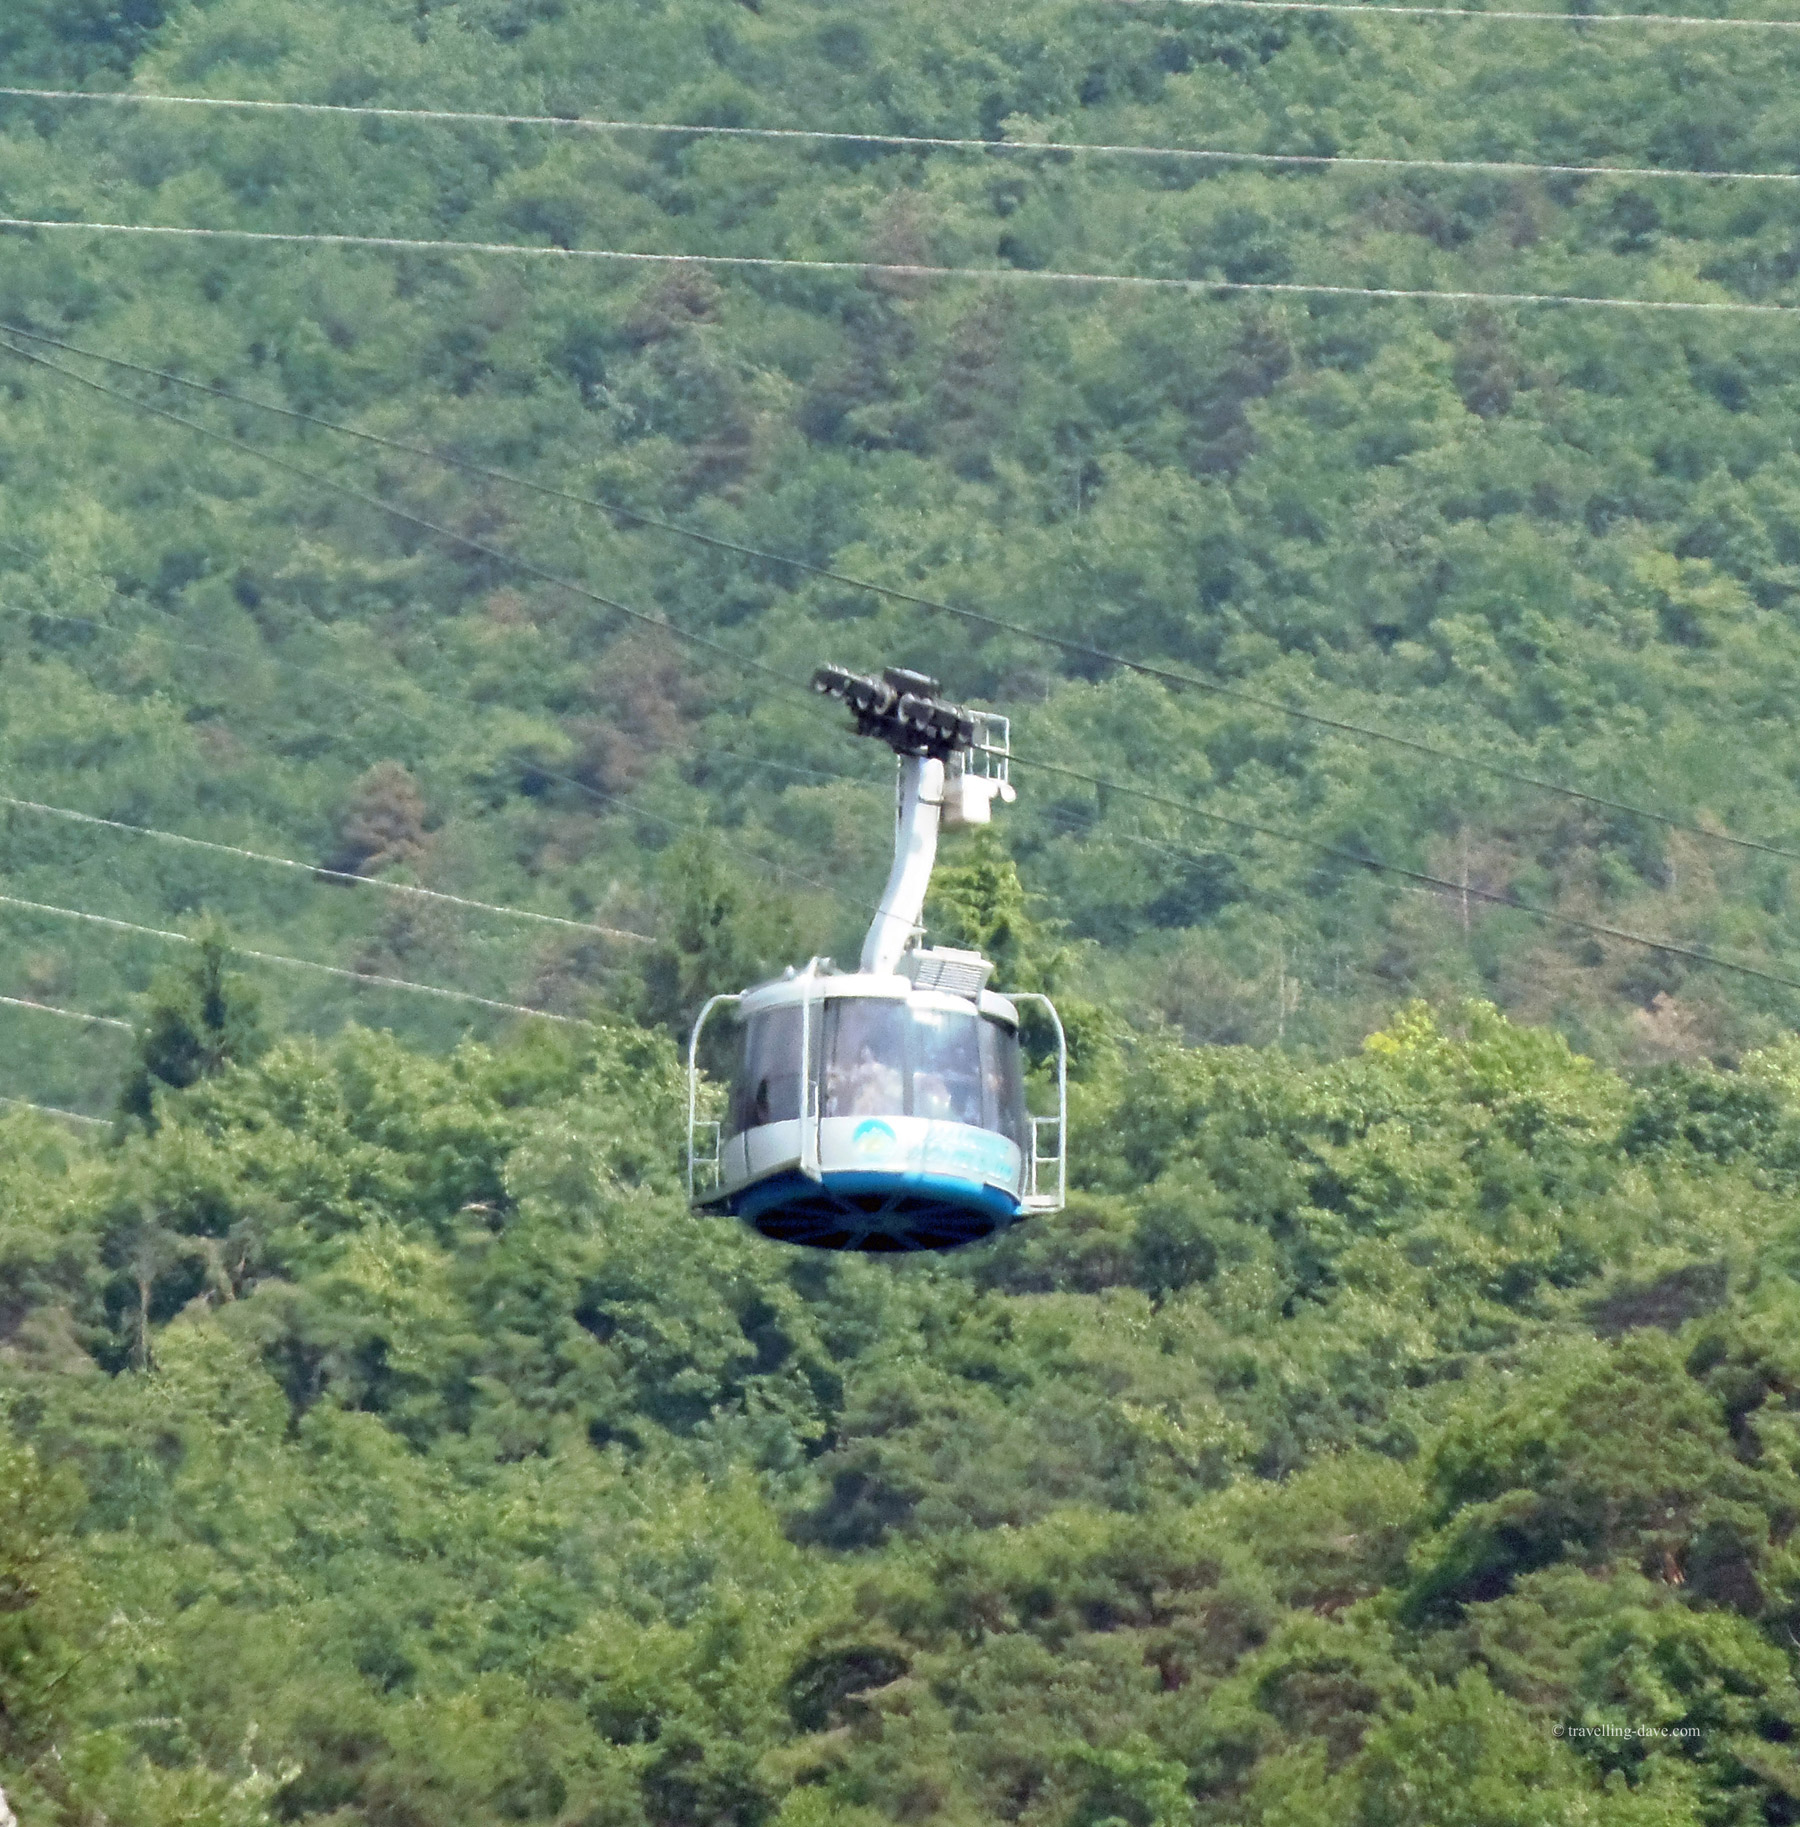 The cable car connecting Malcesine to Monte Baldo in Italy